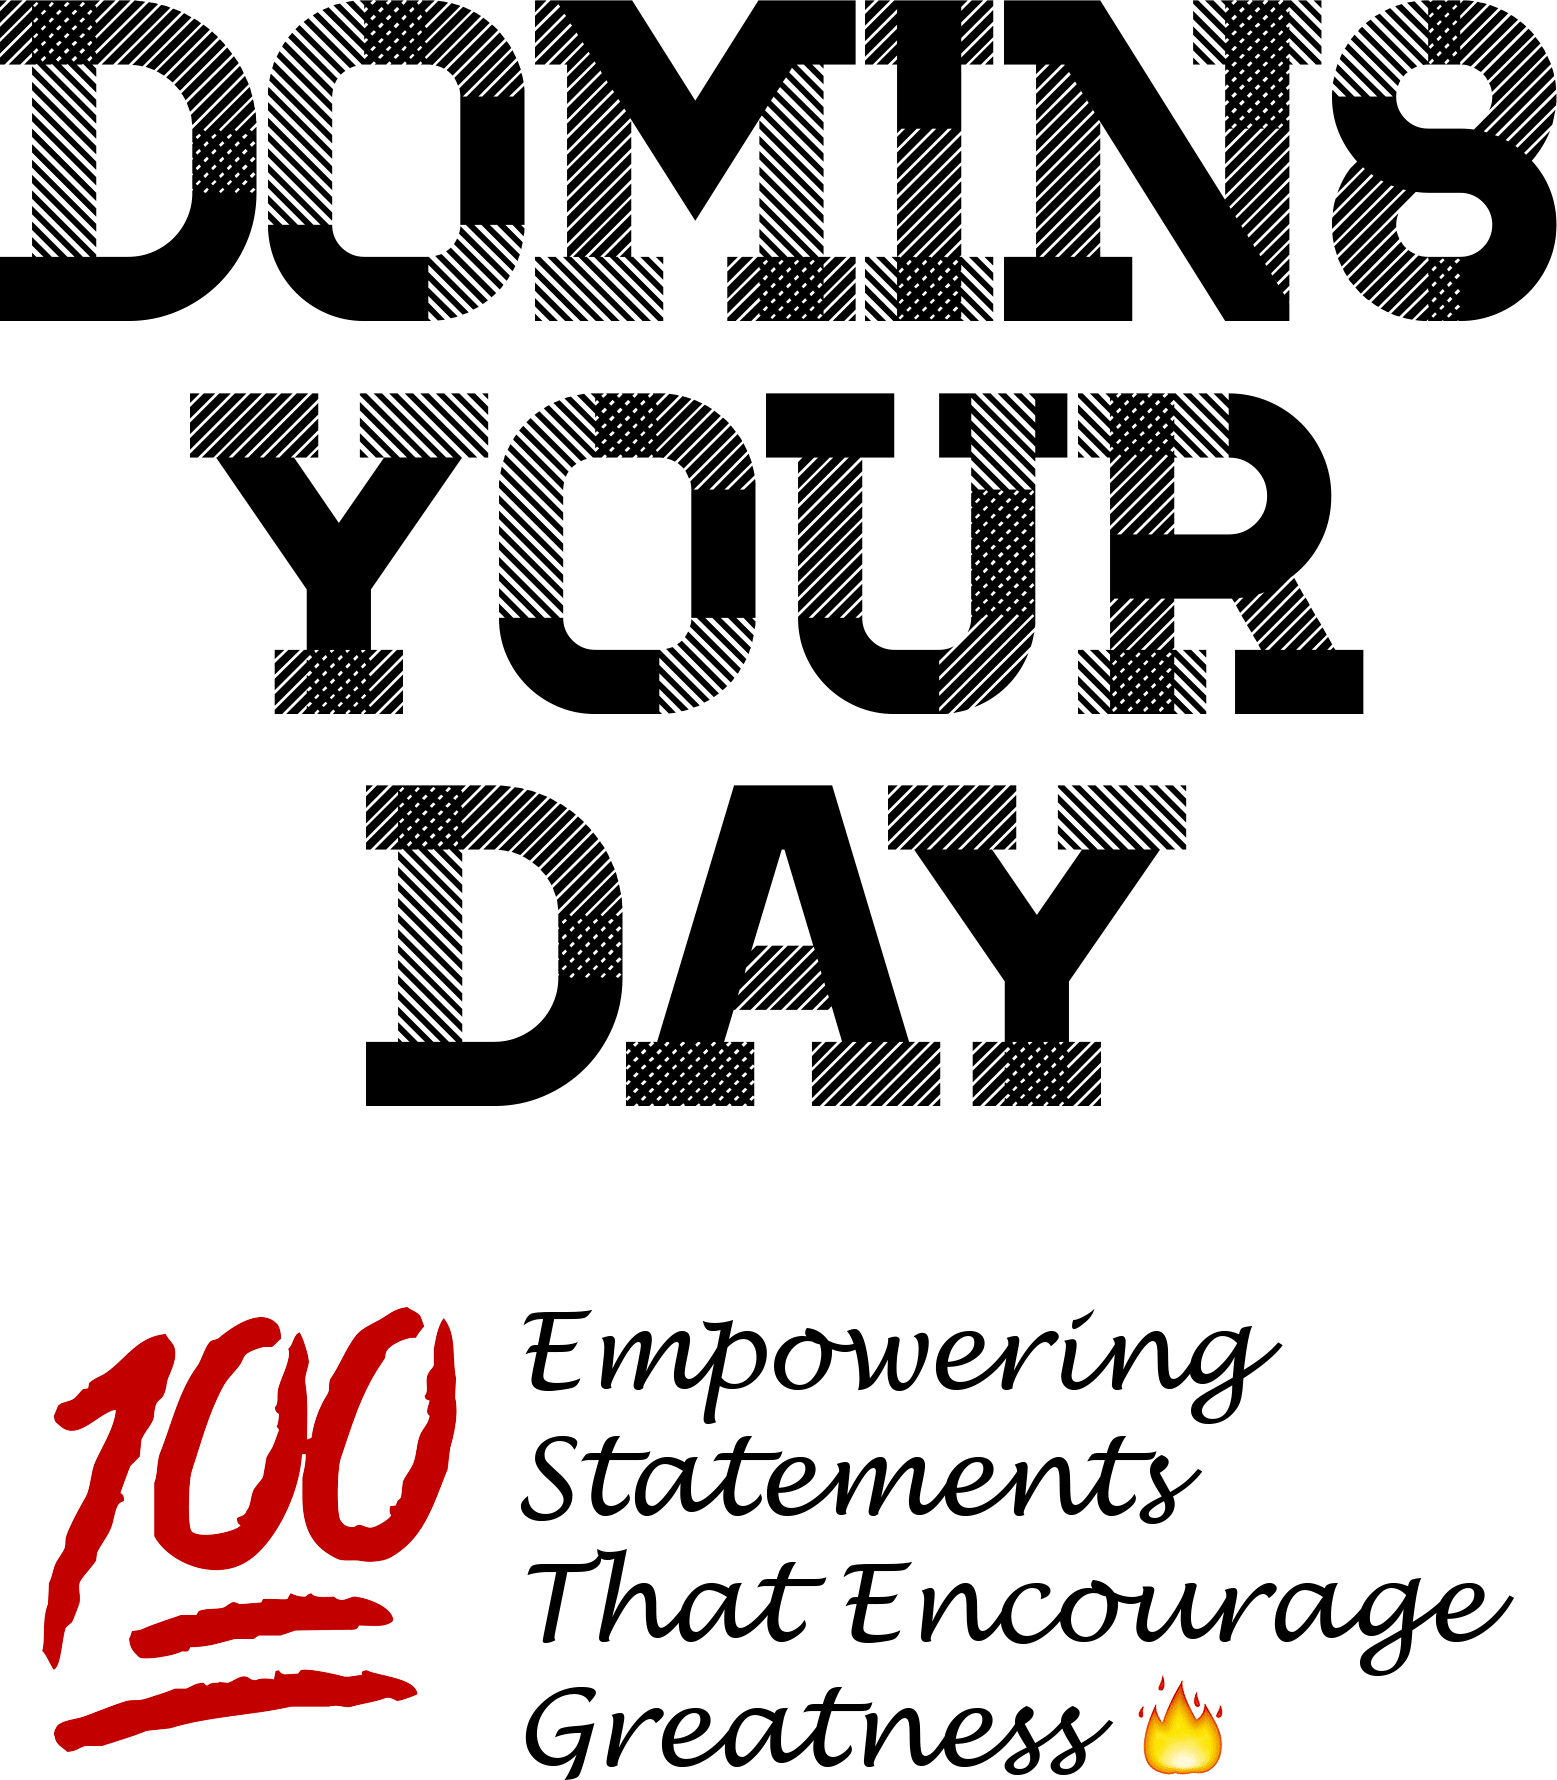 Domin8 Your Day logo